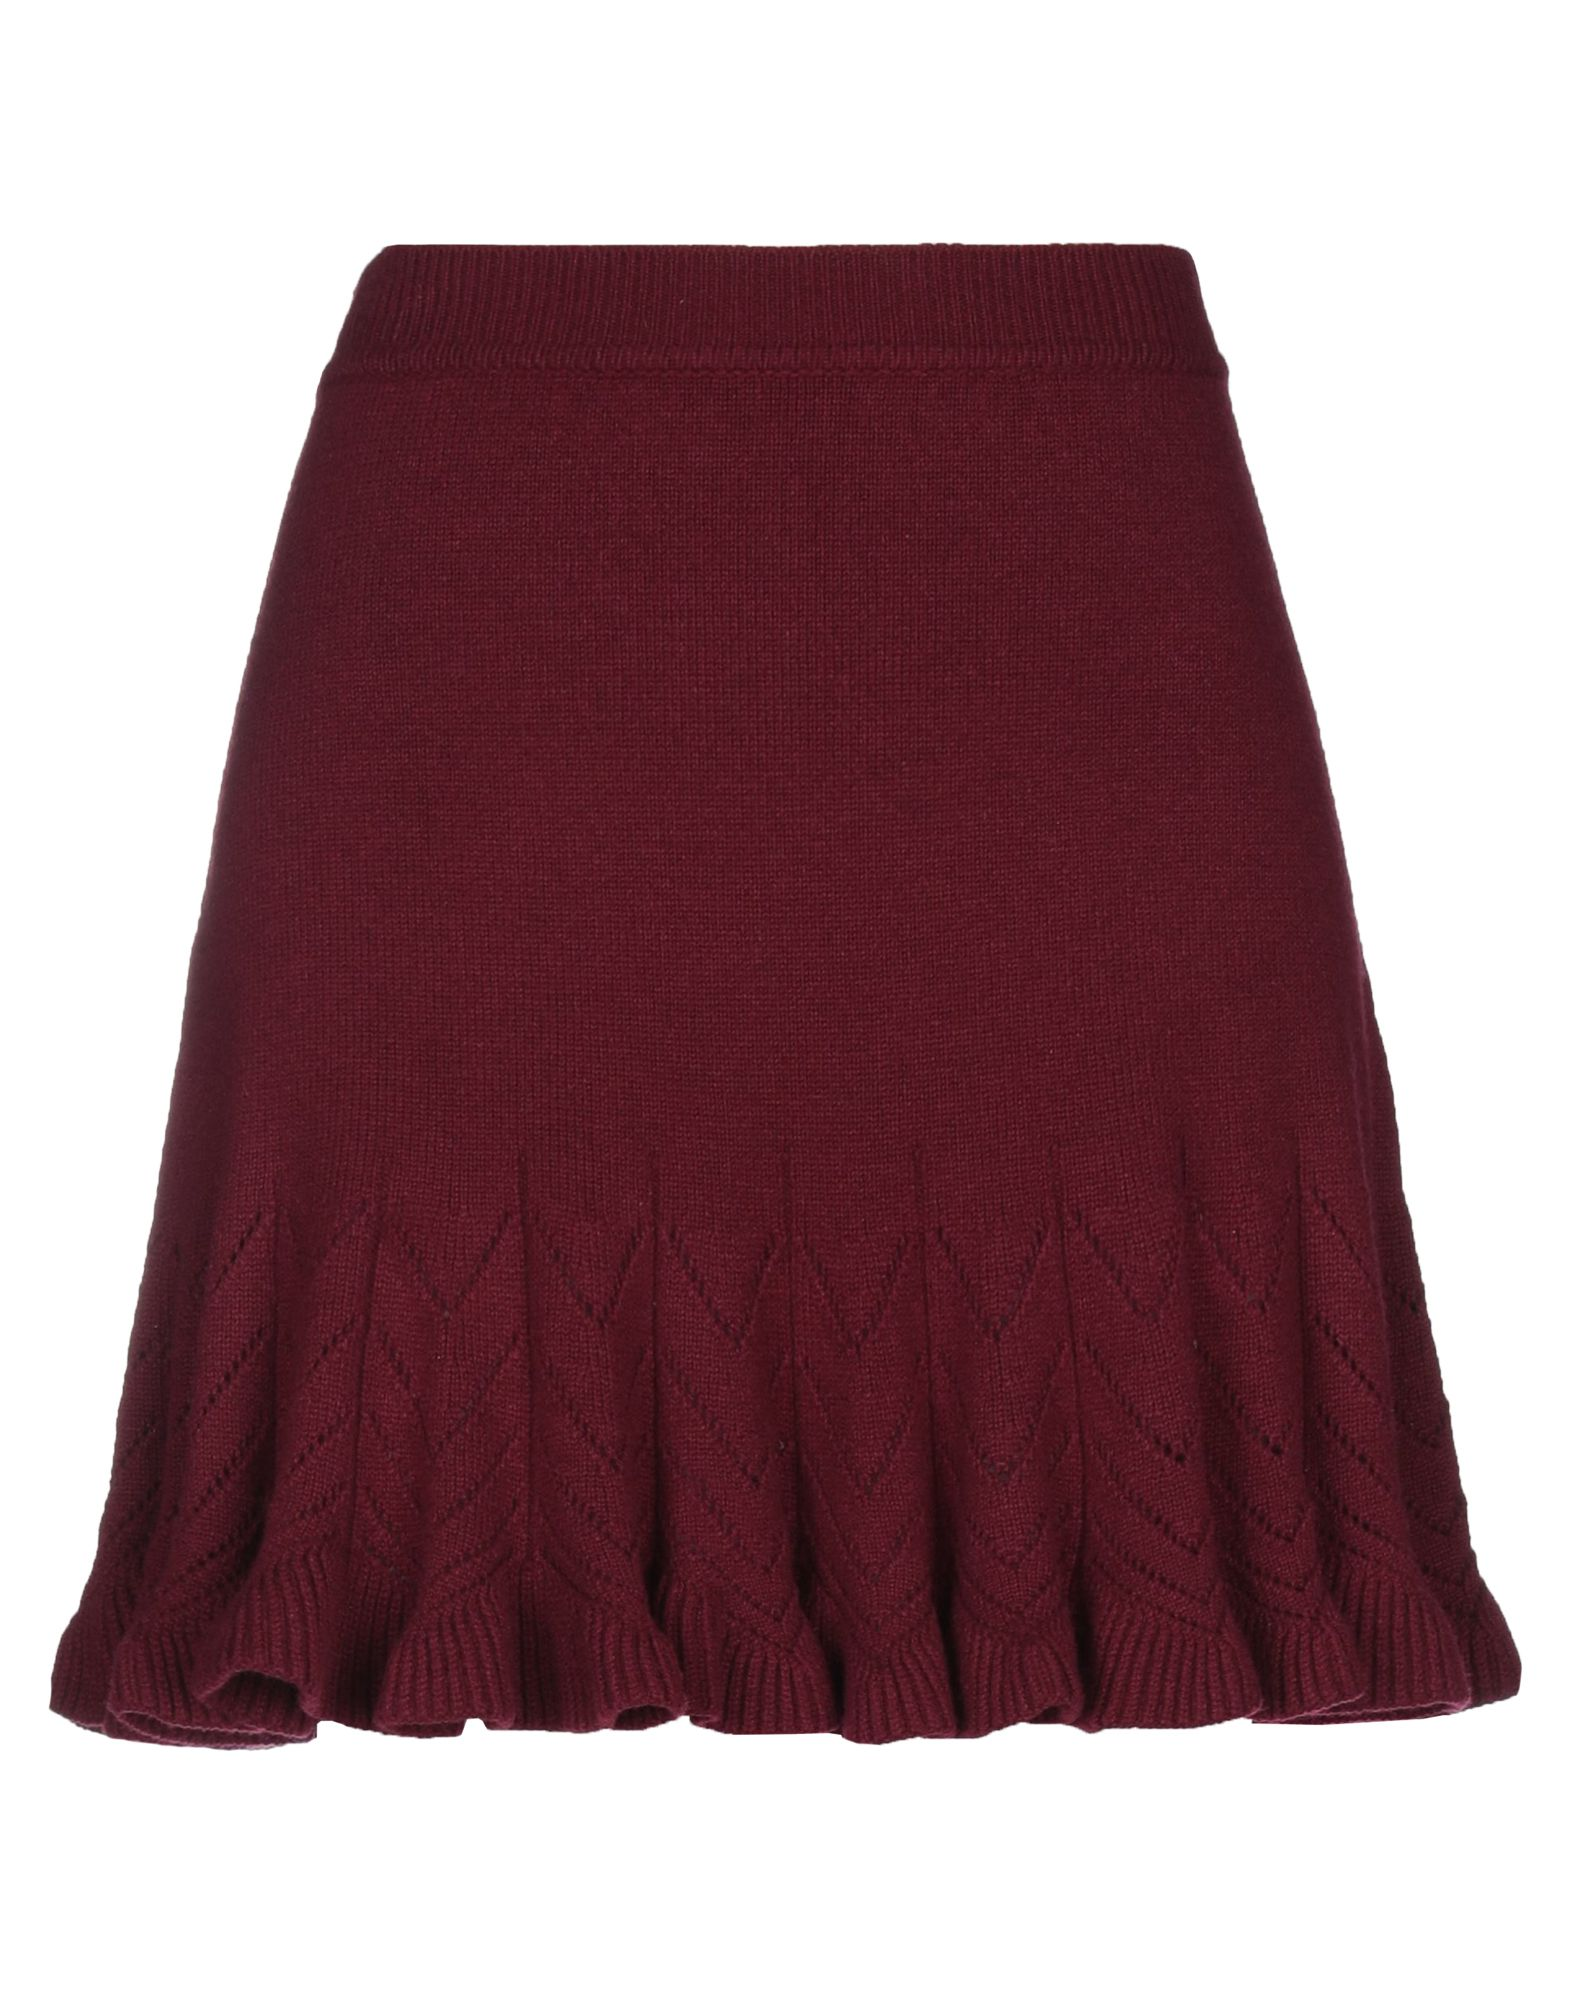 ALEXANDER MCQUEEN Mini skirts. knitted, no appliqués, basic solid color, no pockets, elasticized waist, no fastening, unlined. 55% Wool, 30% Cashmere, 15% Silk